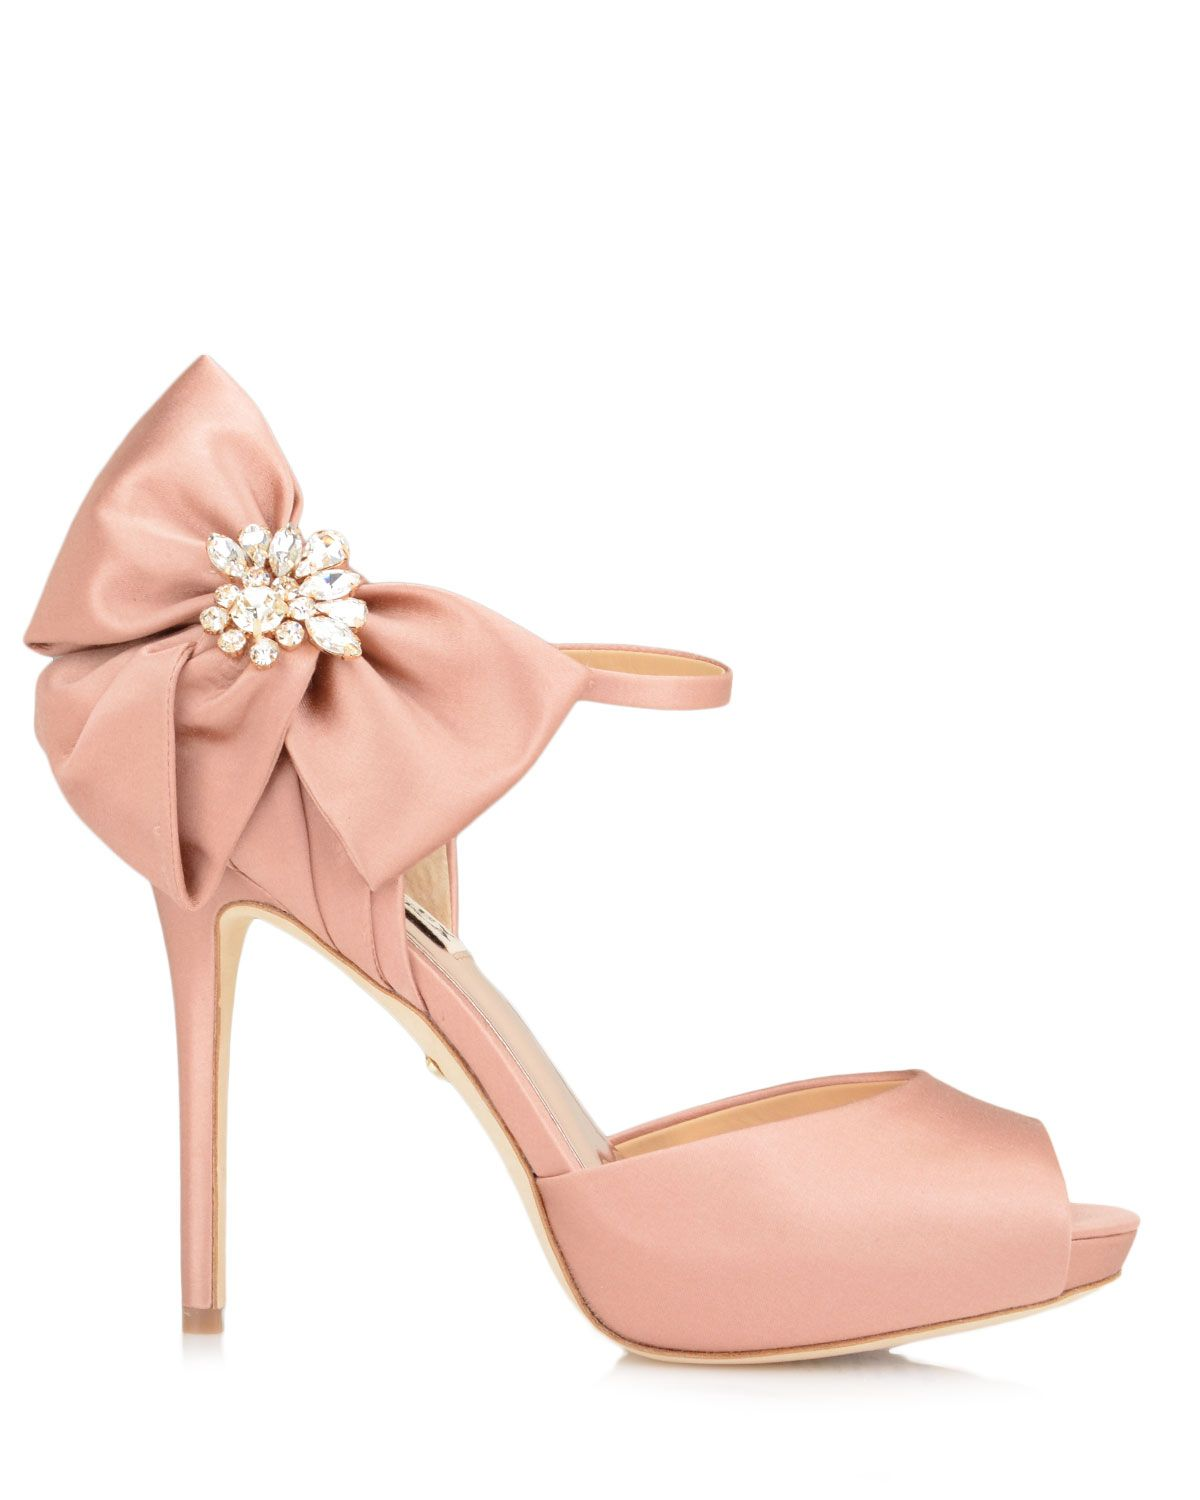 759d9628645 Samra Bow Accent Evening Shoe